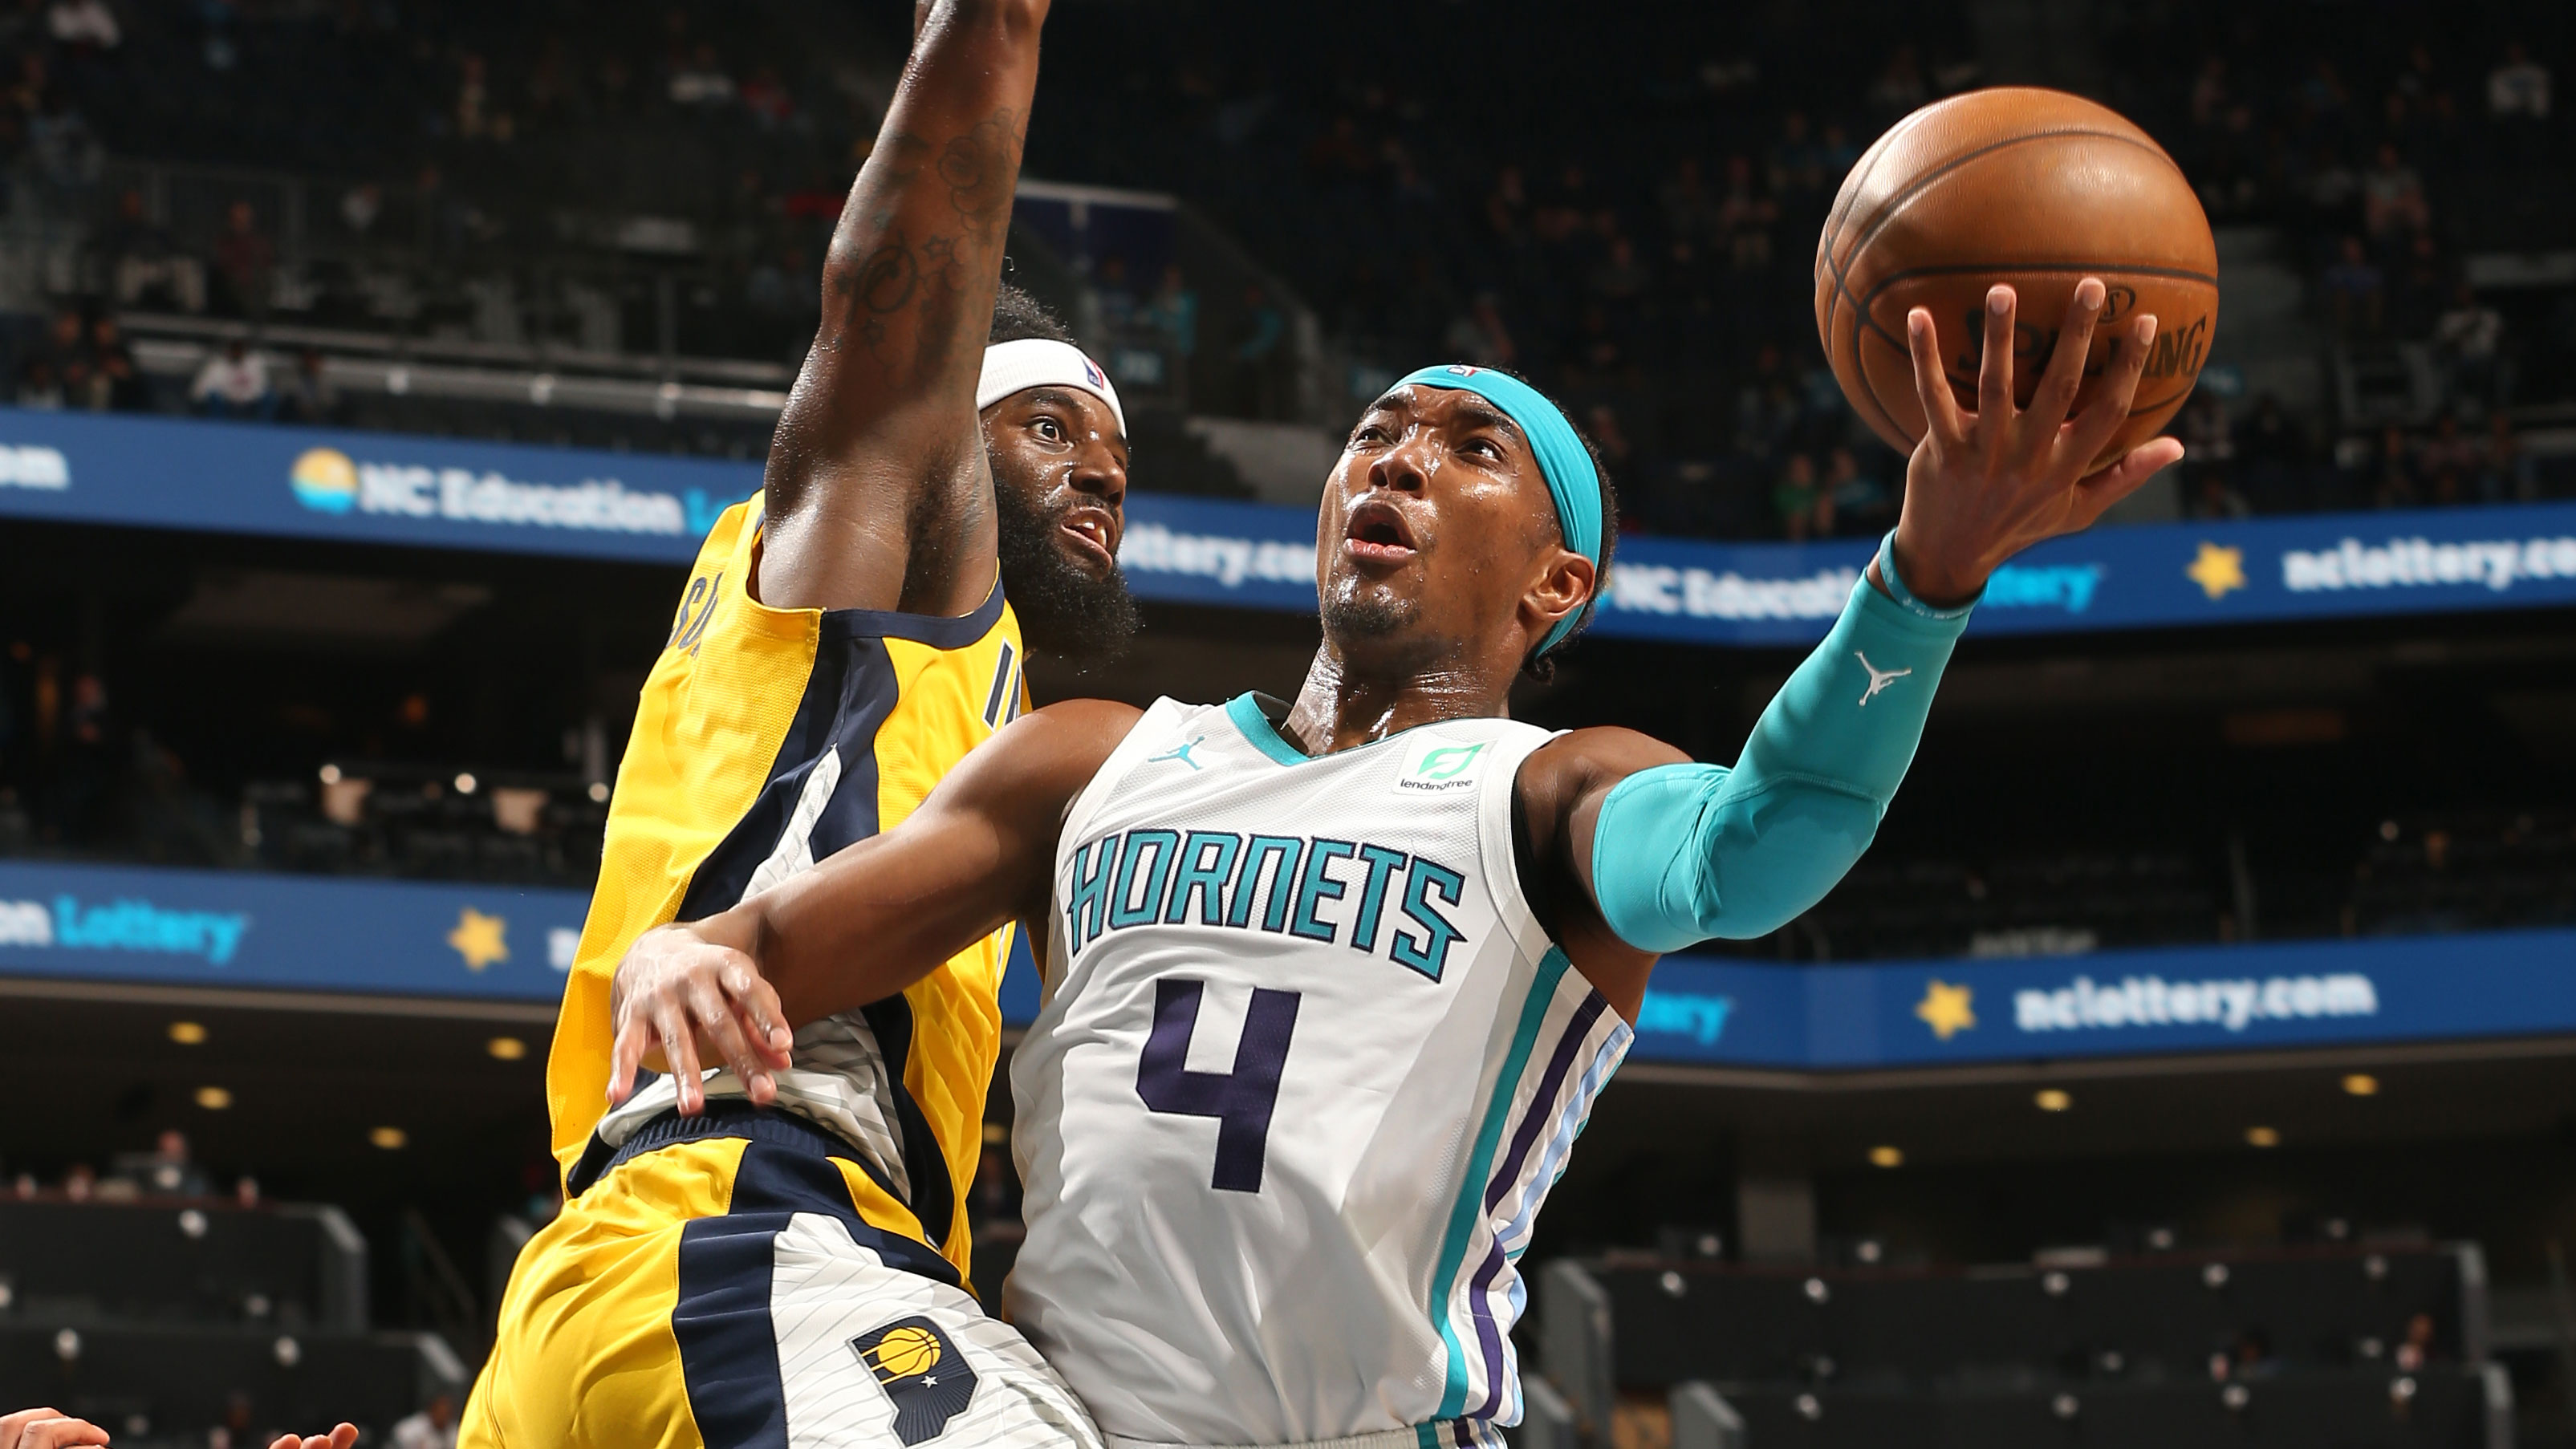 GAME RECAP: Hornets 122, Pacers 120